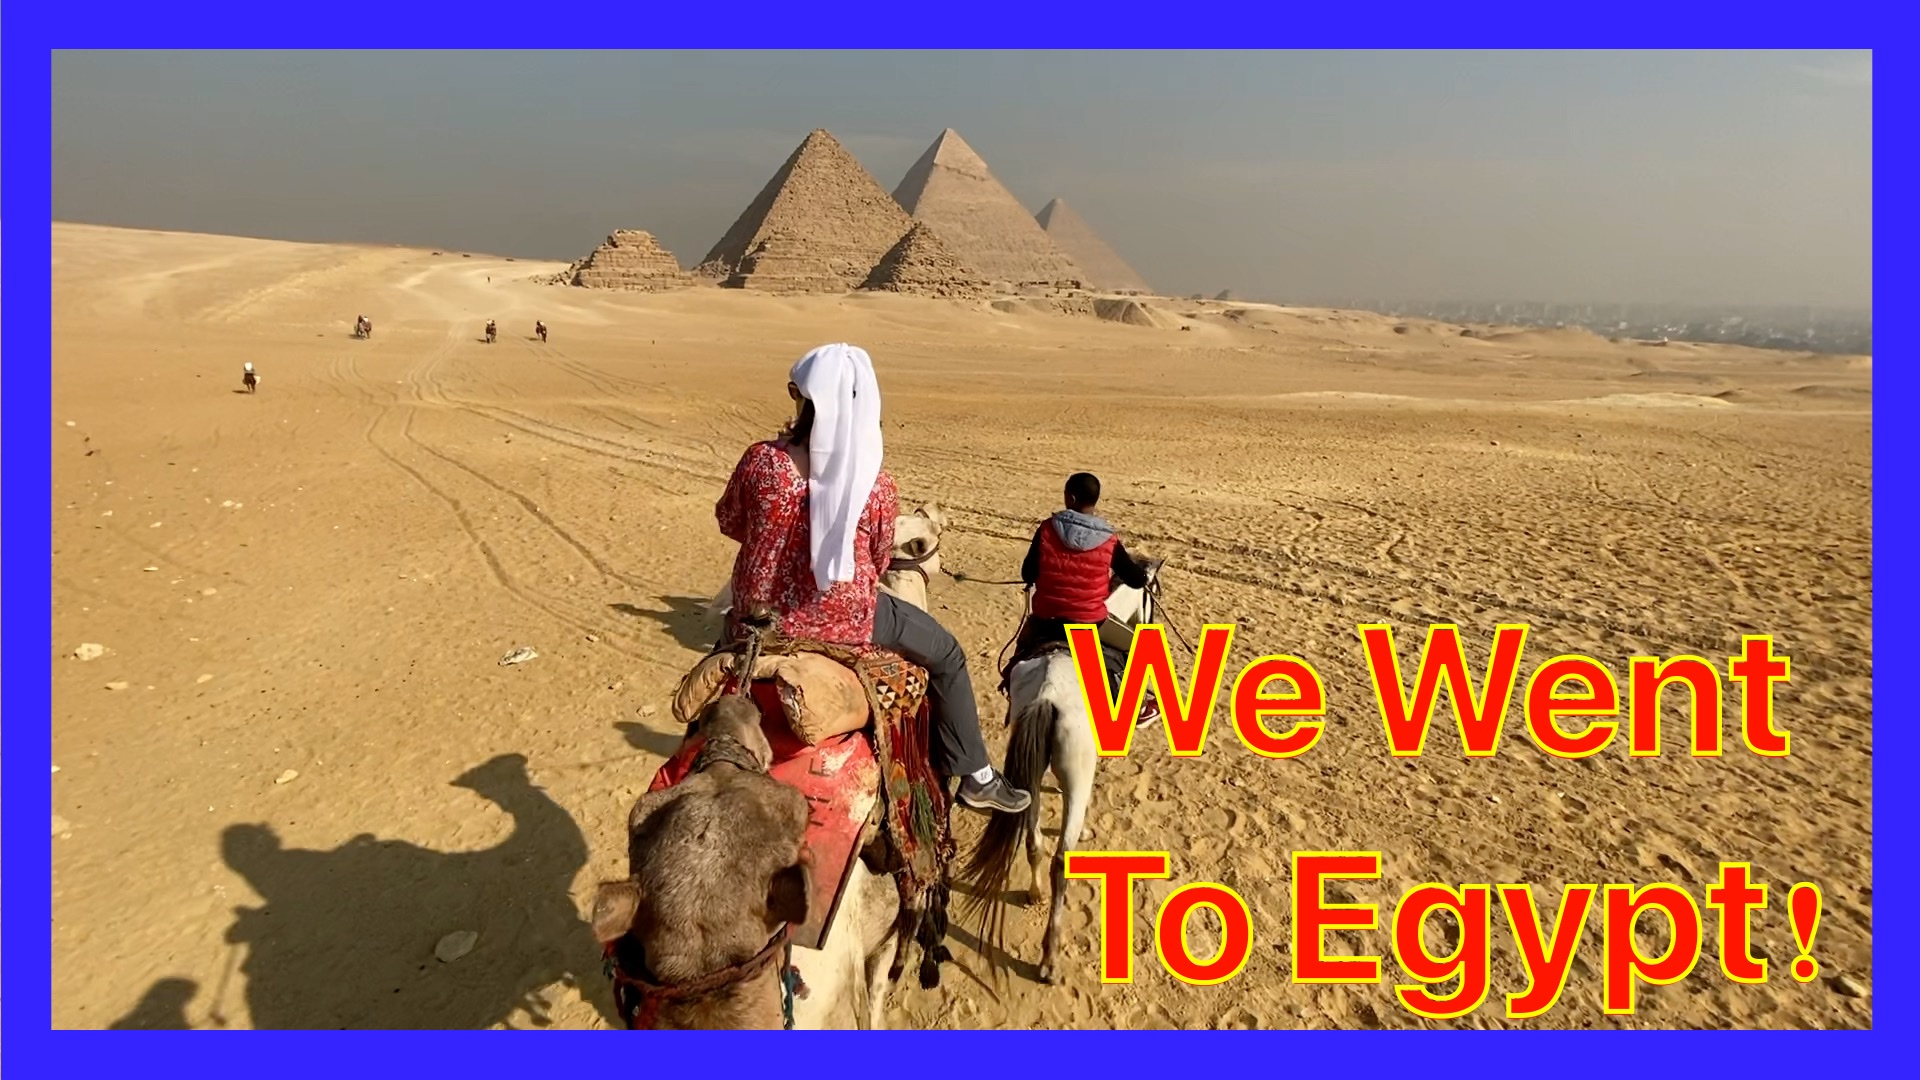 We Touched Pyramids: The Video